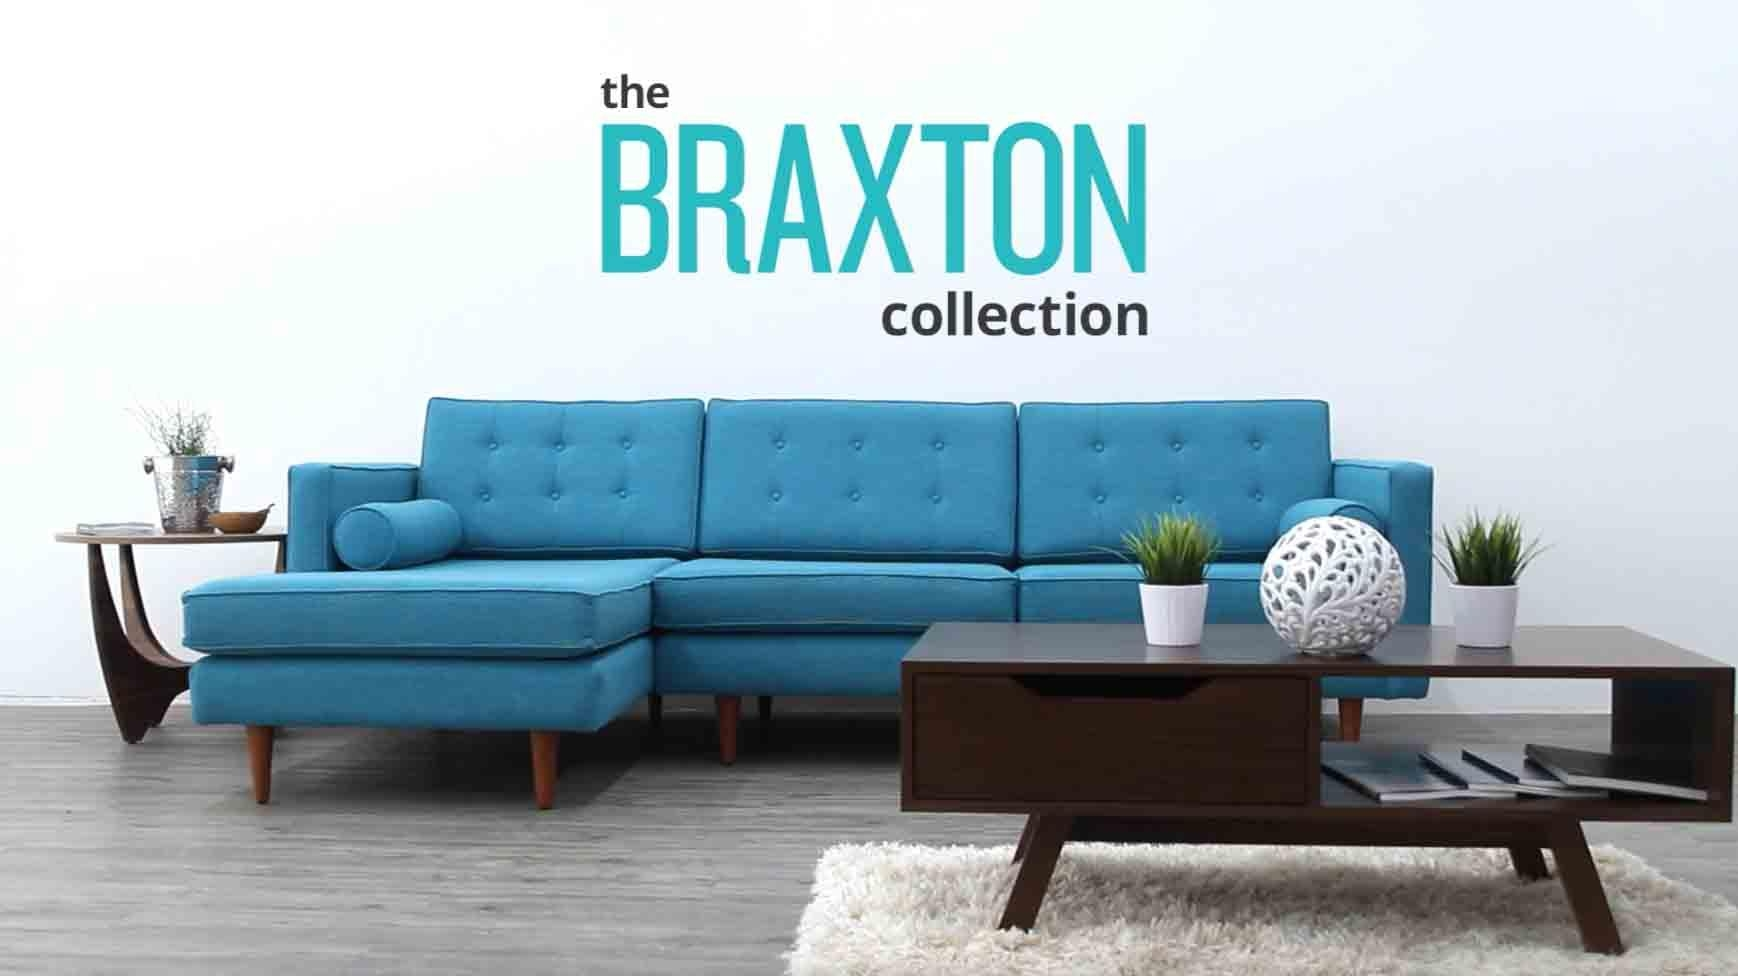 Braxton Sofa | Joybird Inside Braxton Sofa (View 12 of 20)